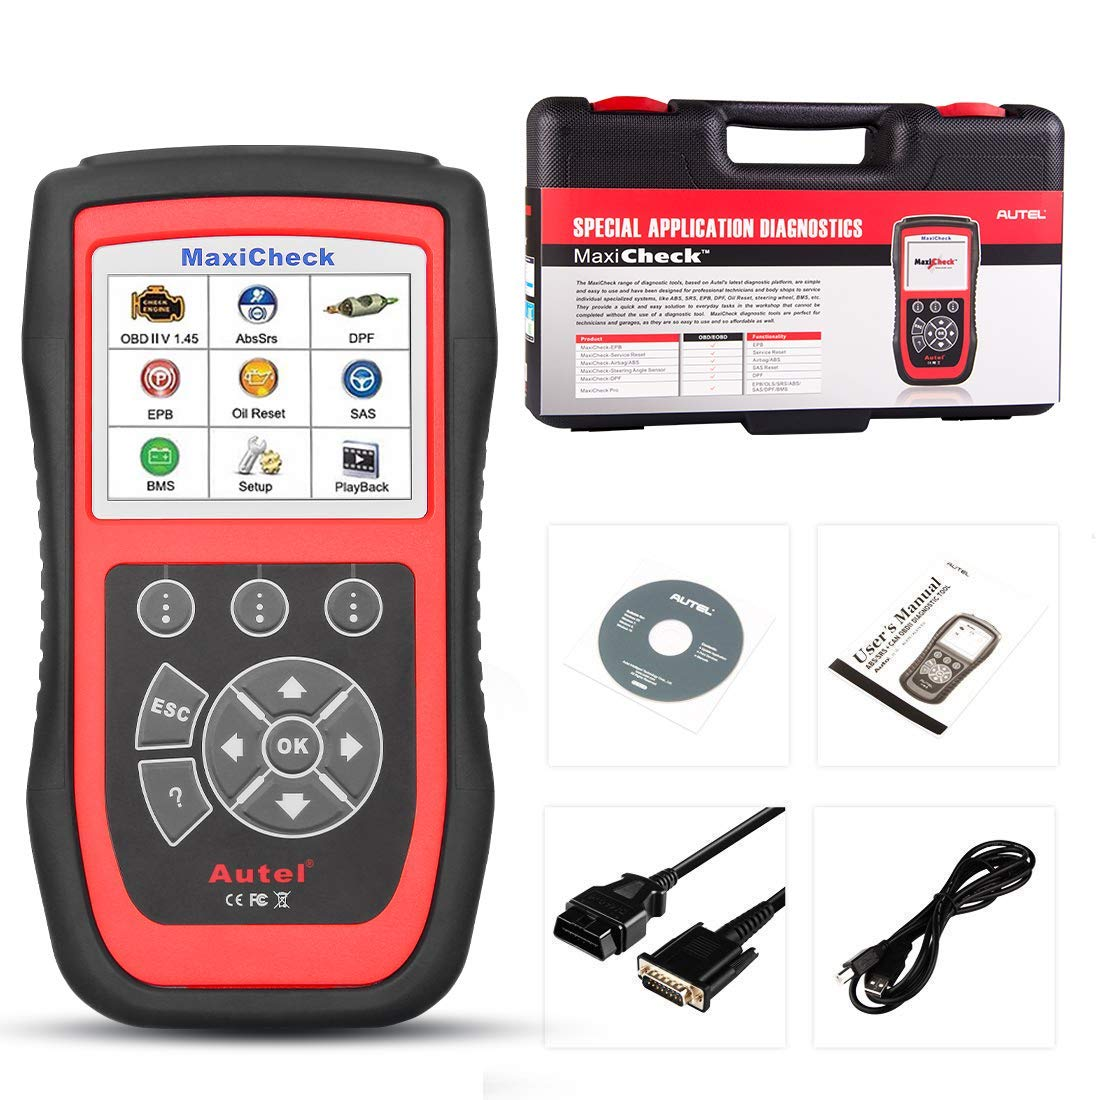 Autel MaxiCheck Pro OBD2 Scanner Automotive Diagnostic Scan Tool with ABS Auto Bleed, SRS Airbag, Oil Reset, SAS, EPB, BMS for Specific Vehicles 1996 to 2012 by Autel (Image #9)